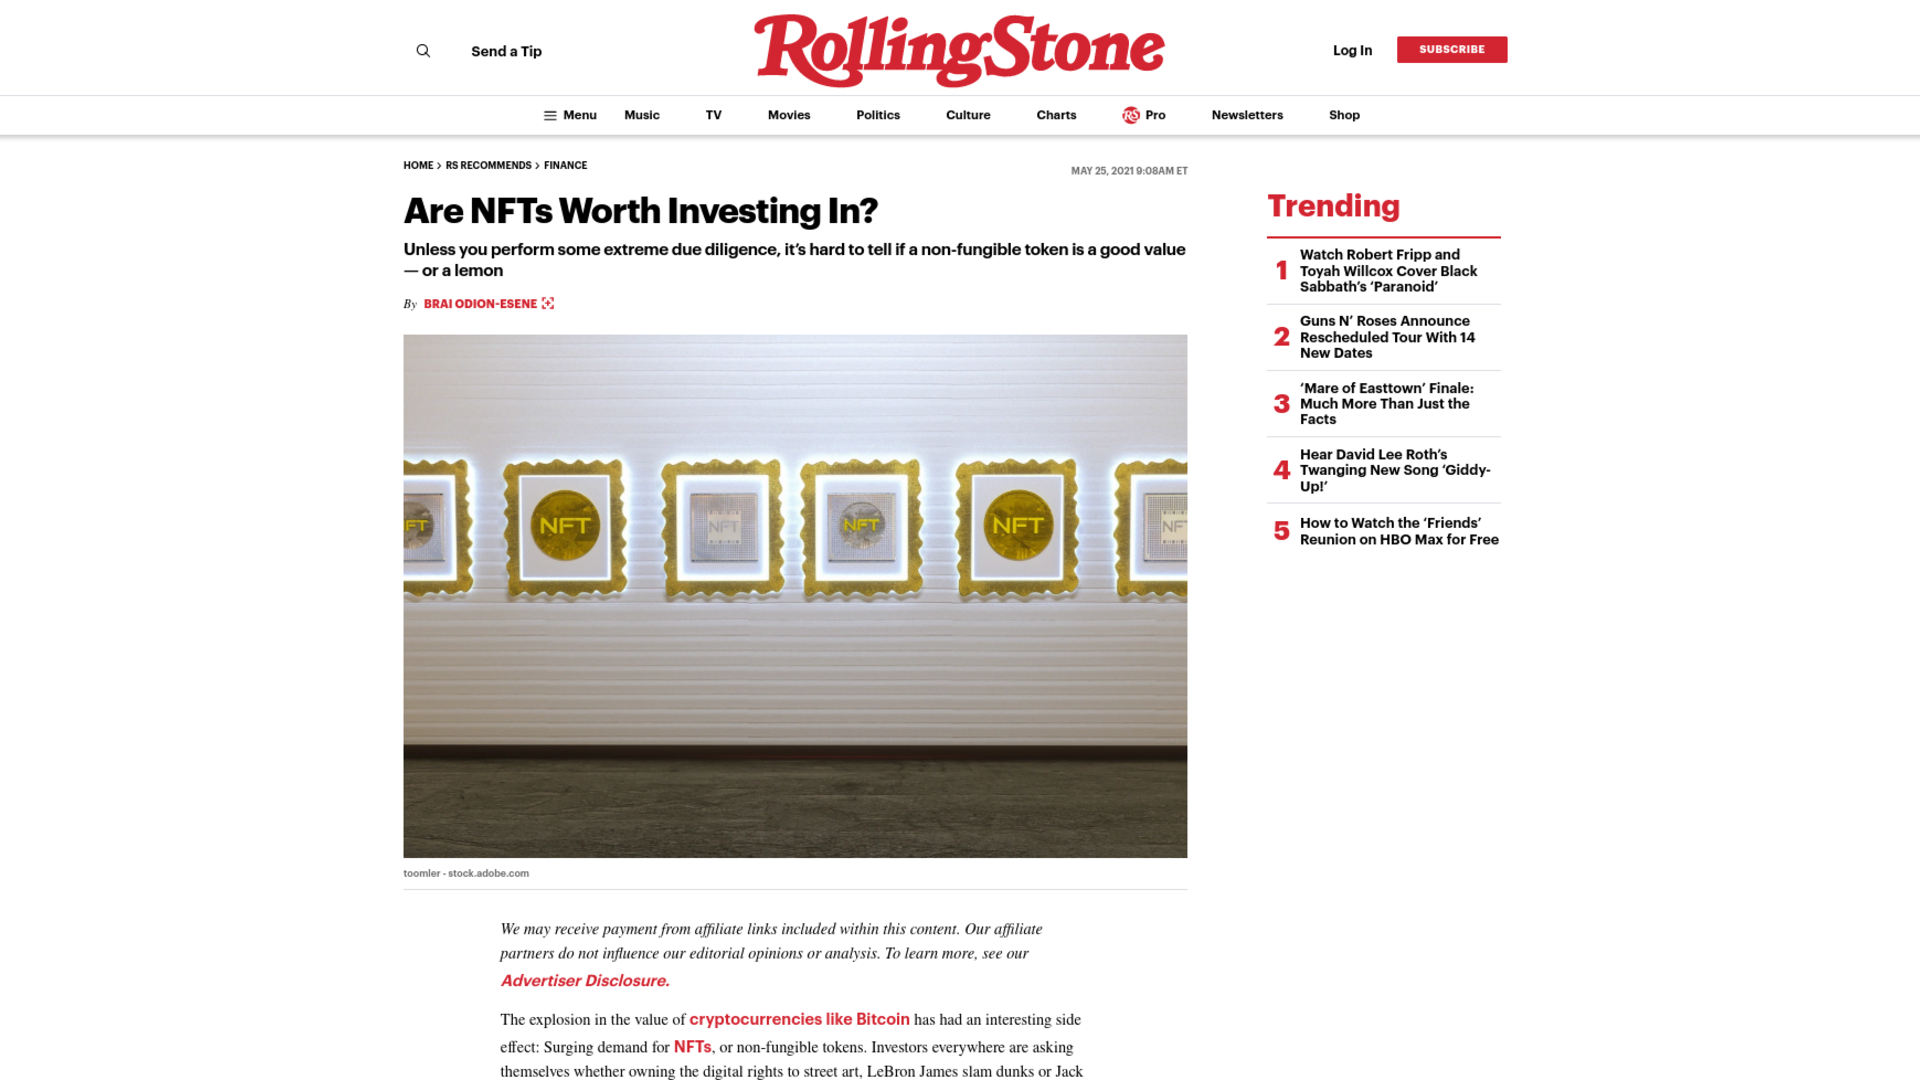 Fairness Rocks News Are NFTs Worth Investing In?